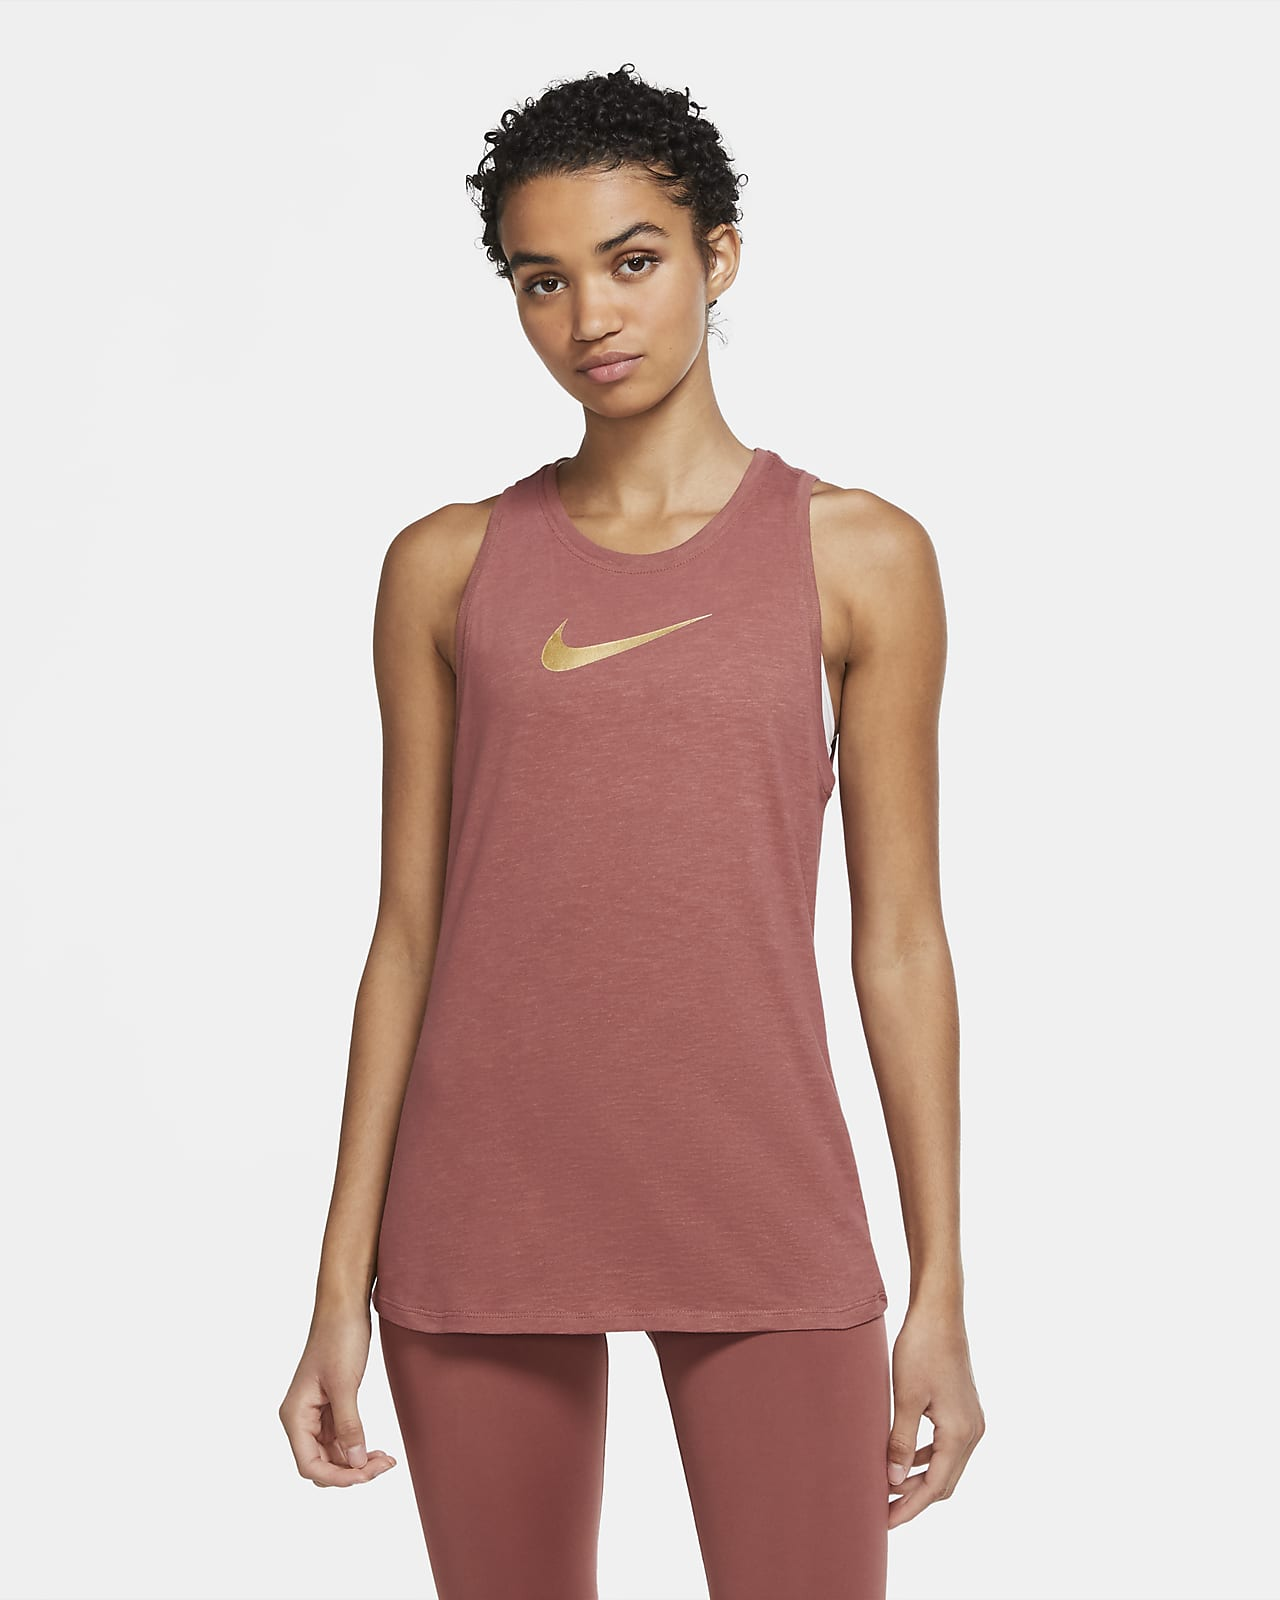 Nike Dri-FIT Icon Clash Women's Training Tank